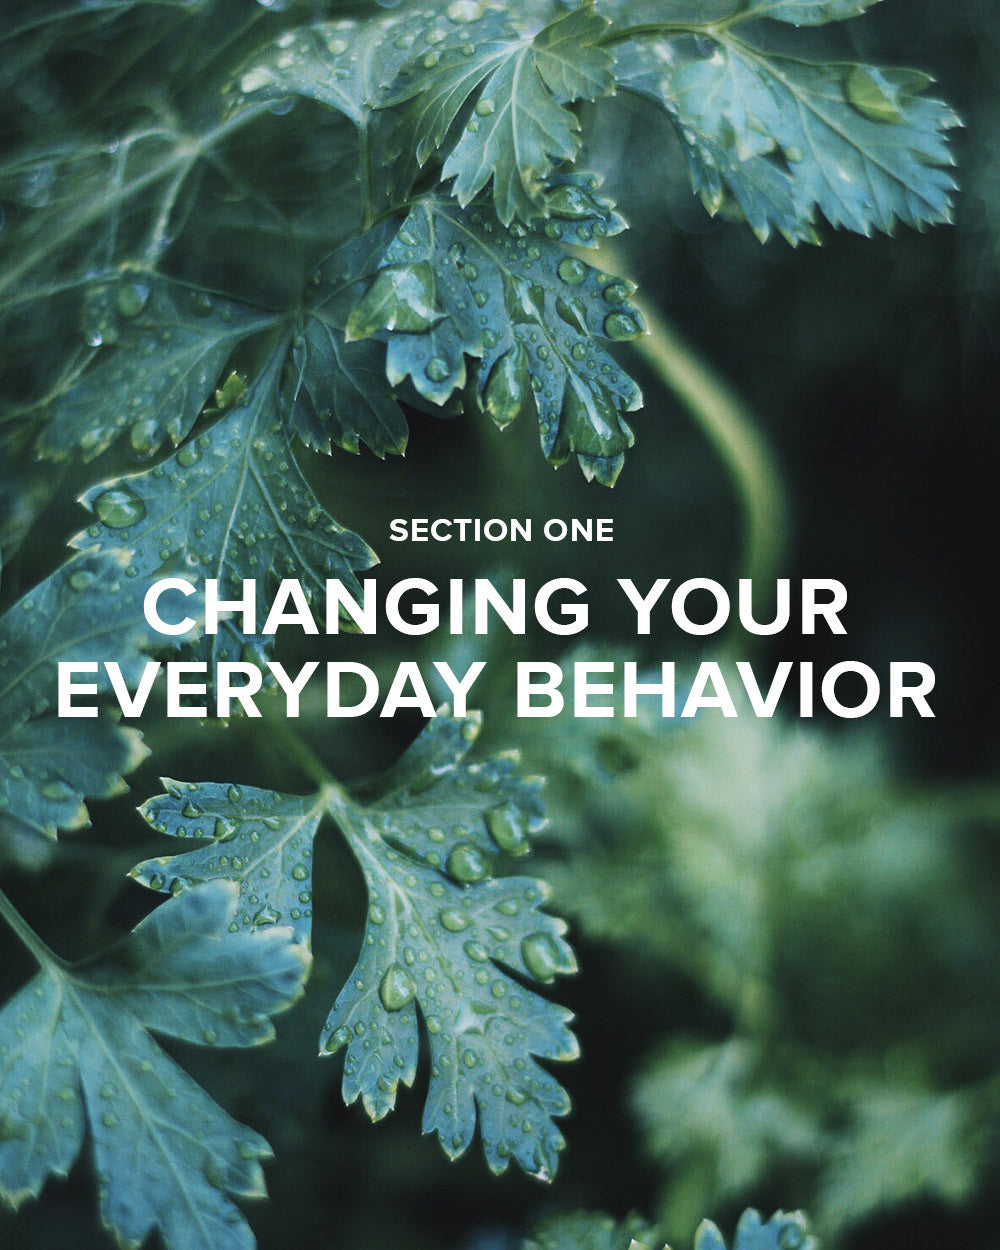 Section 1: Changing Your Everyday Behavior